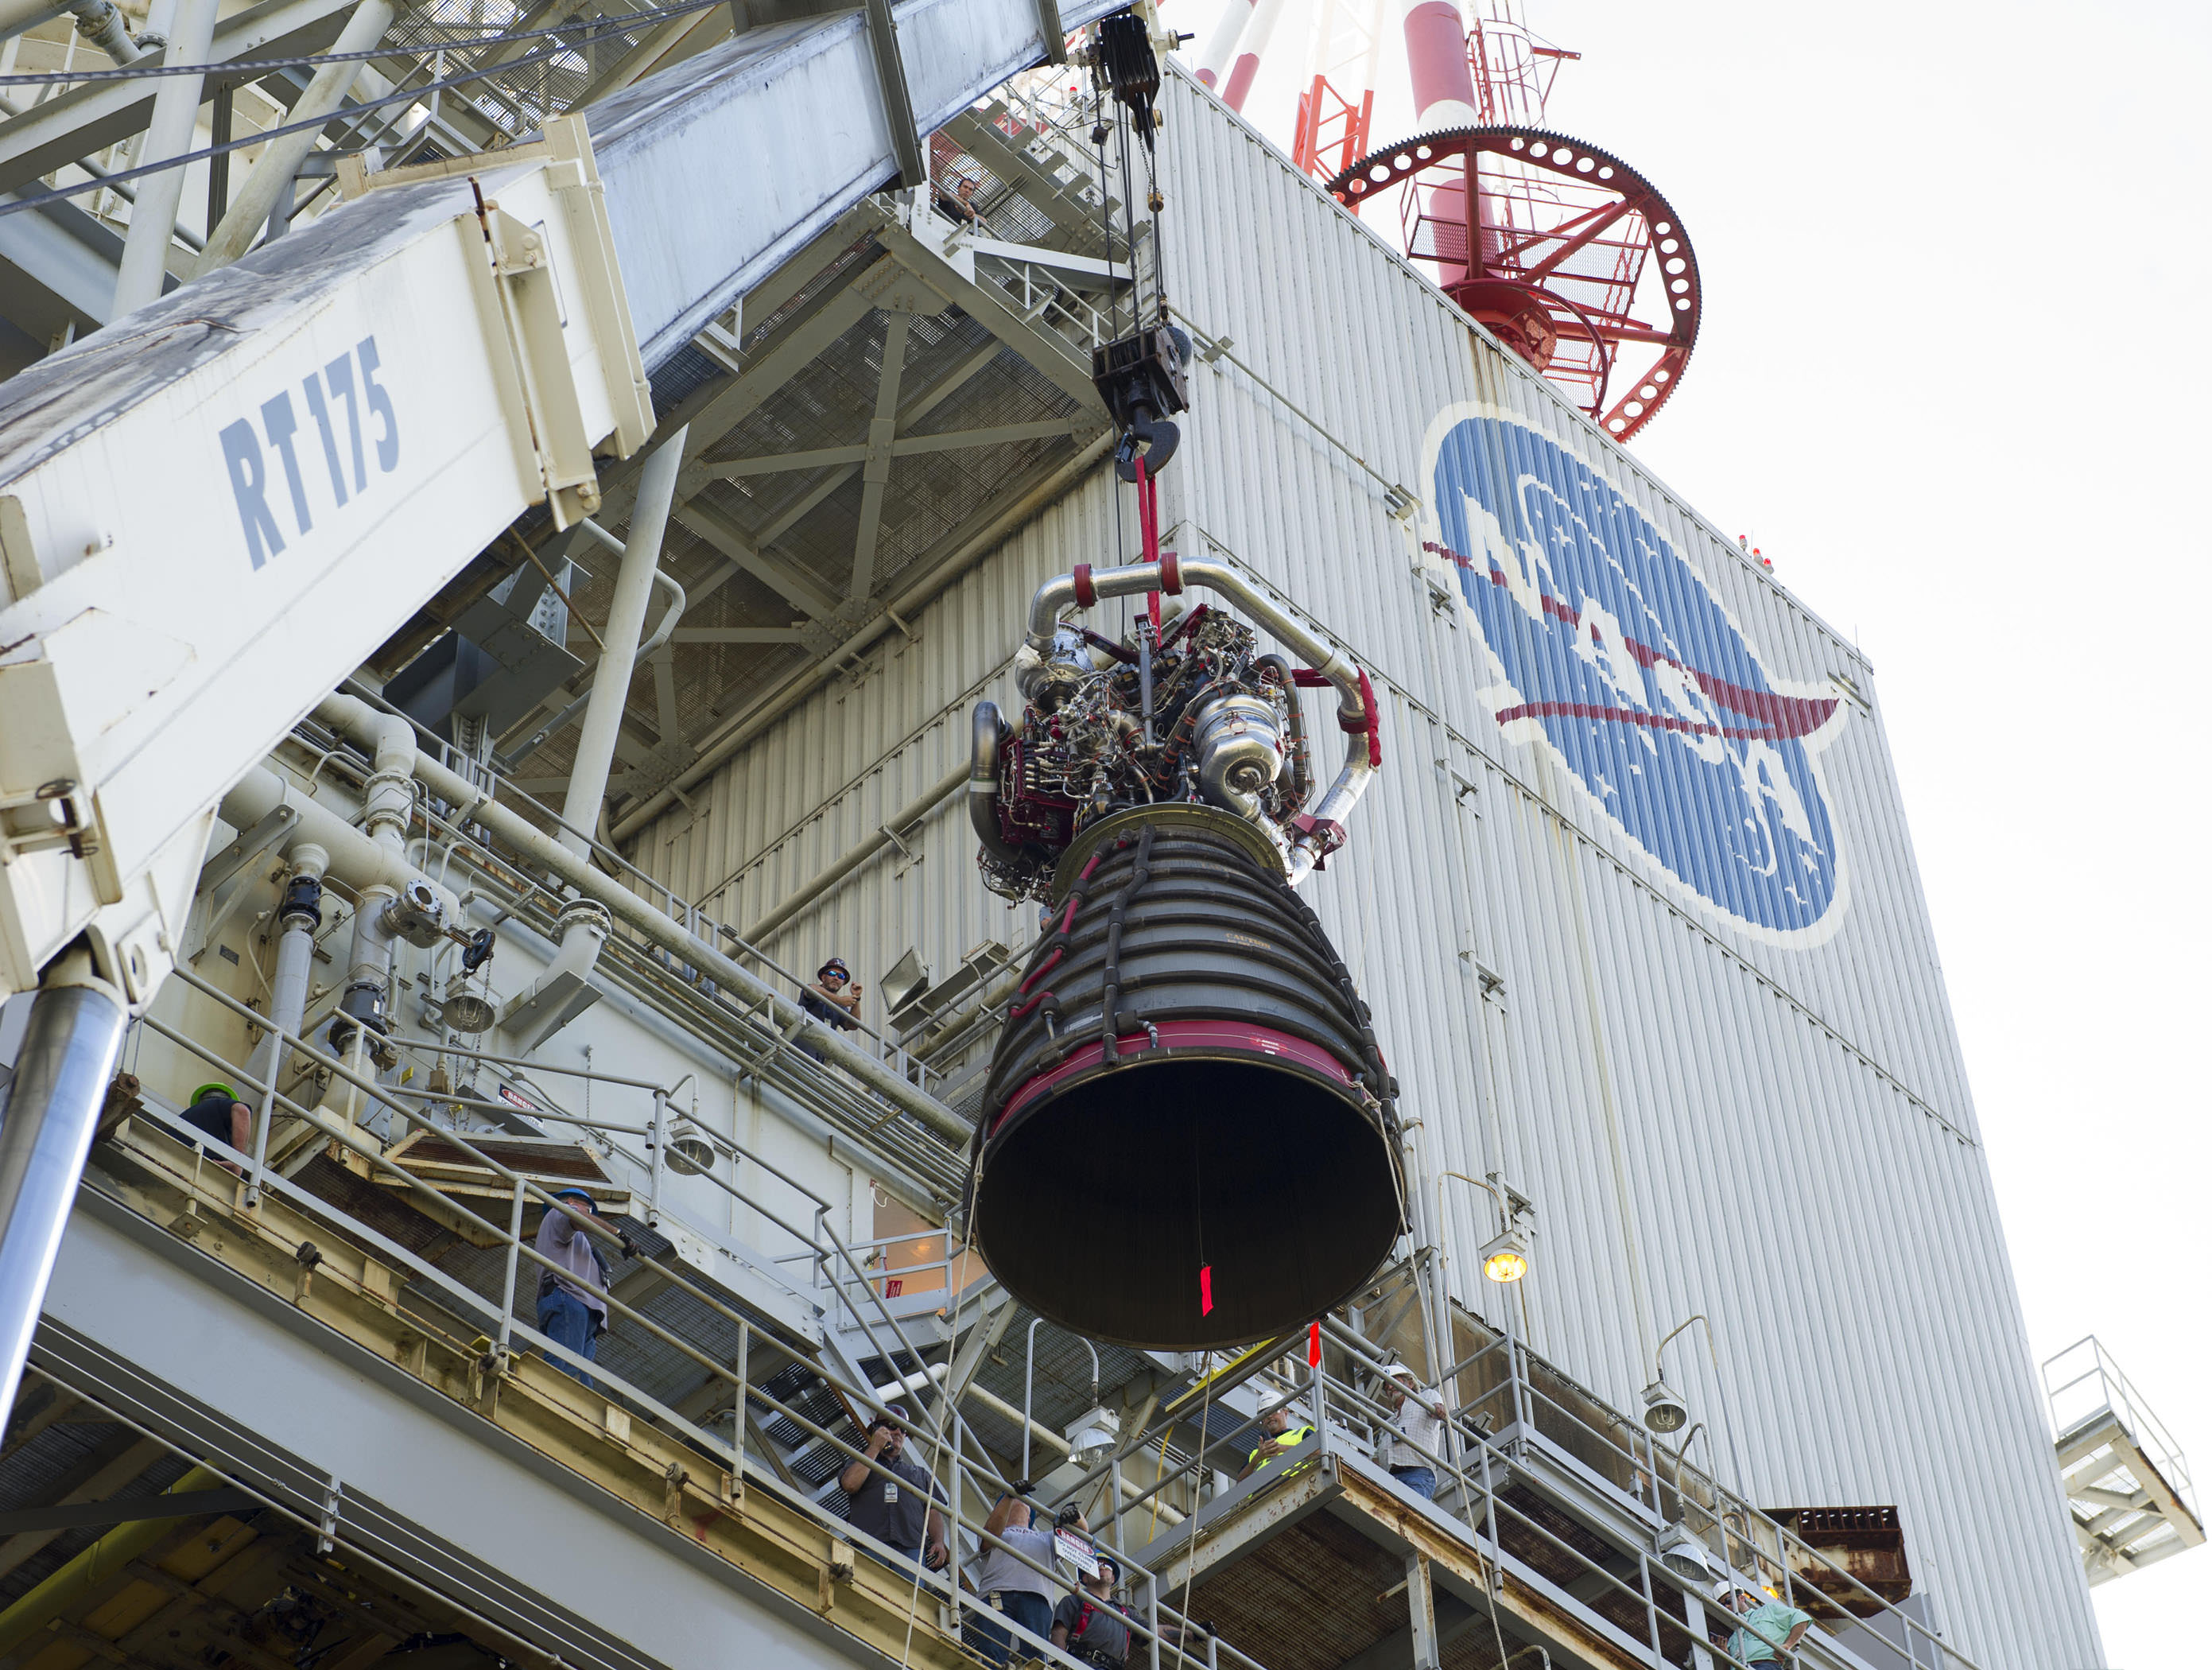 The first RS-25 flight engine, No. 2059, is placed on the A-1 Test Stand at Stennis Space Center, Miss. The engines were built by Aerojet Rocketdyne and are being tested in 2015 and 2016 to certify them to fly on NASA's new Space Launch System (SLS) rocket.  SLS-1 will launch on its first uncrewed mission in 2018. Credit: NASA